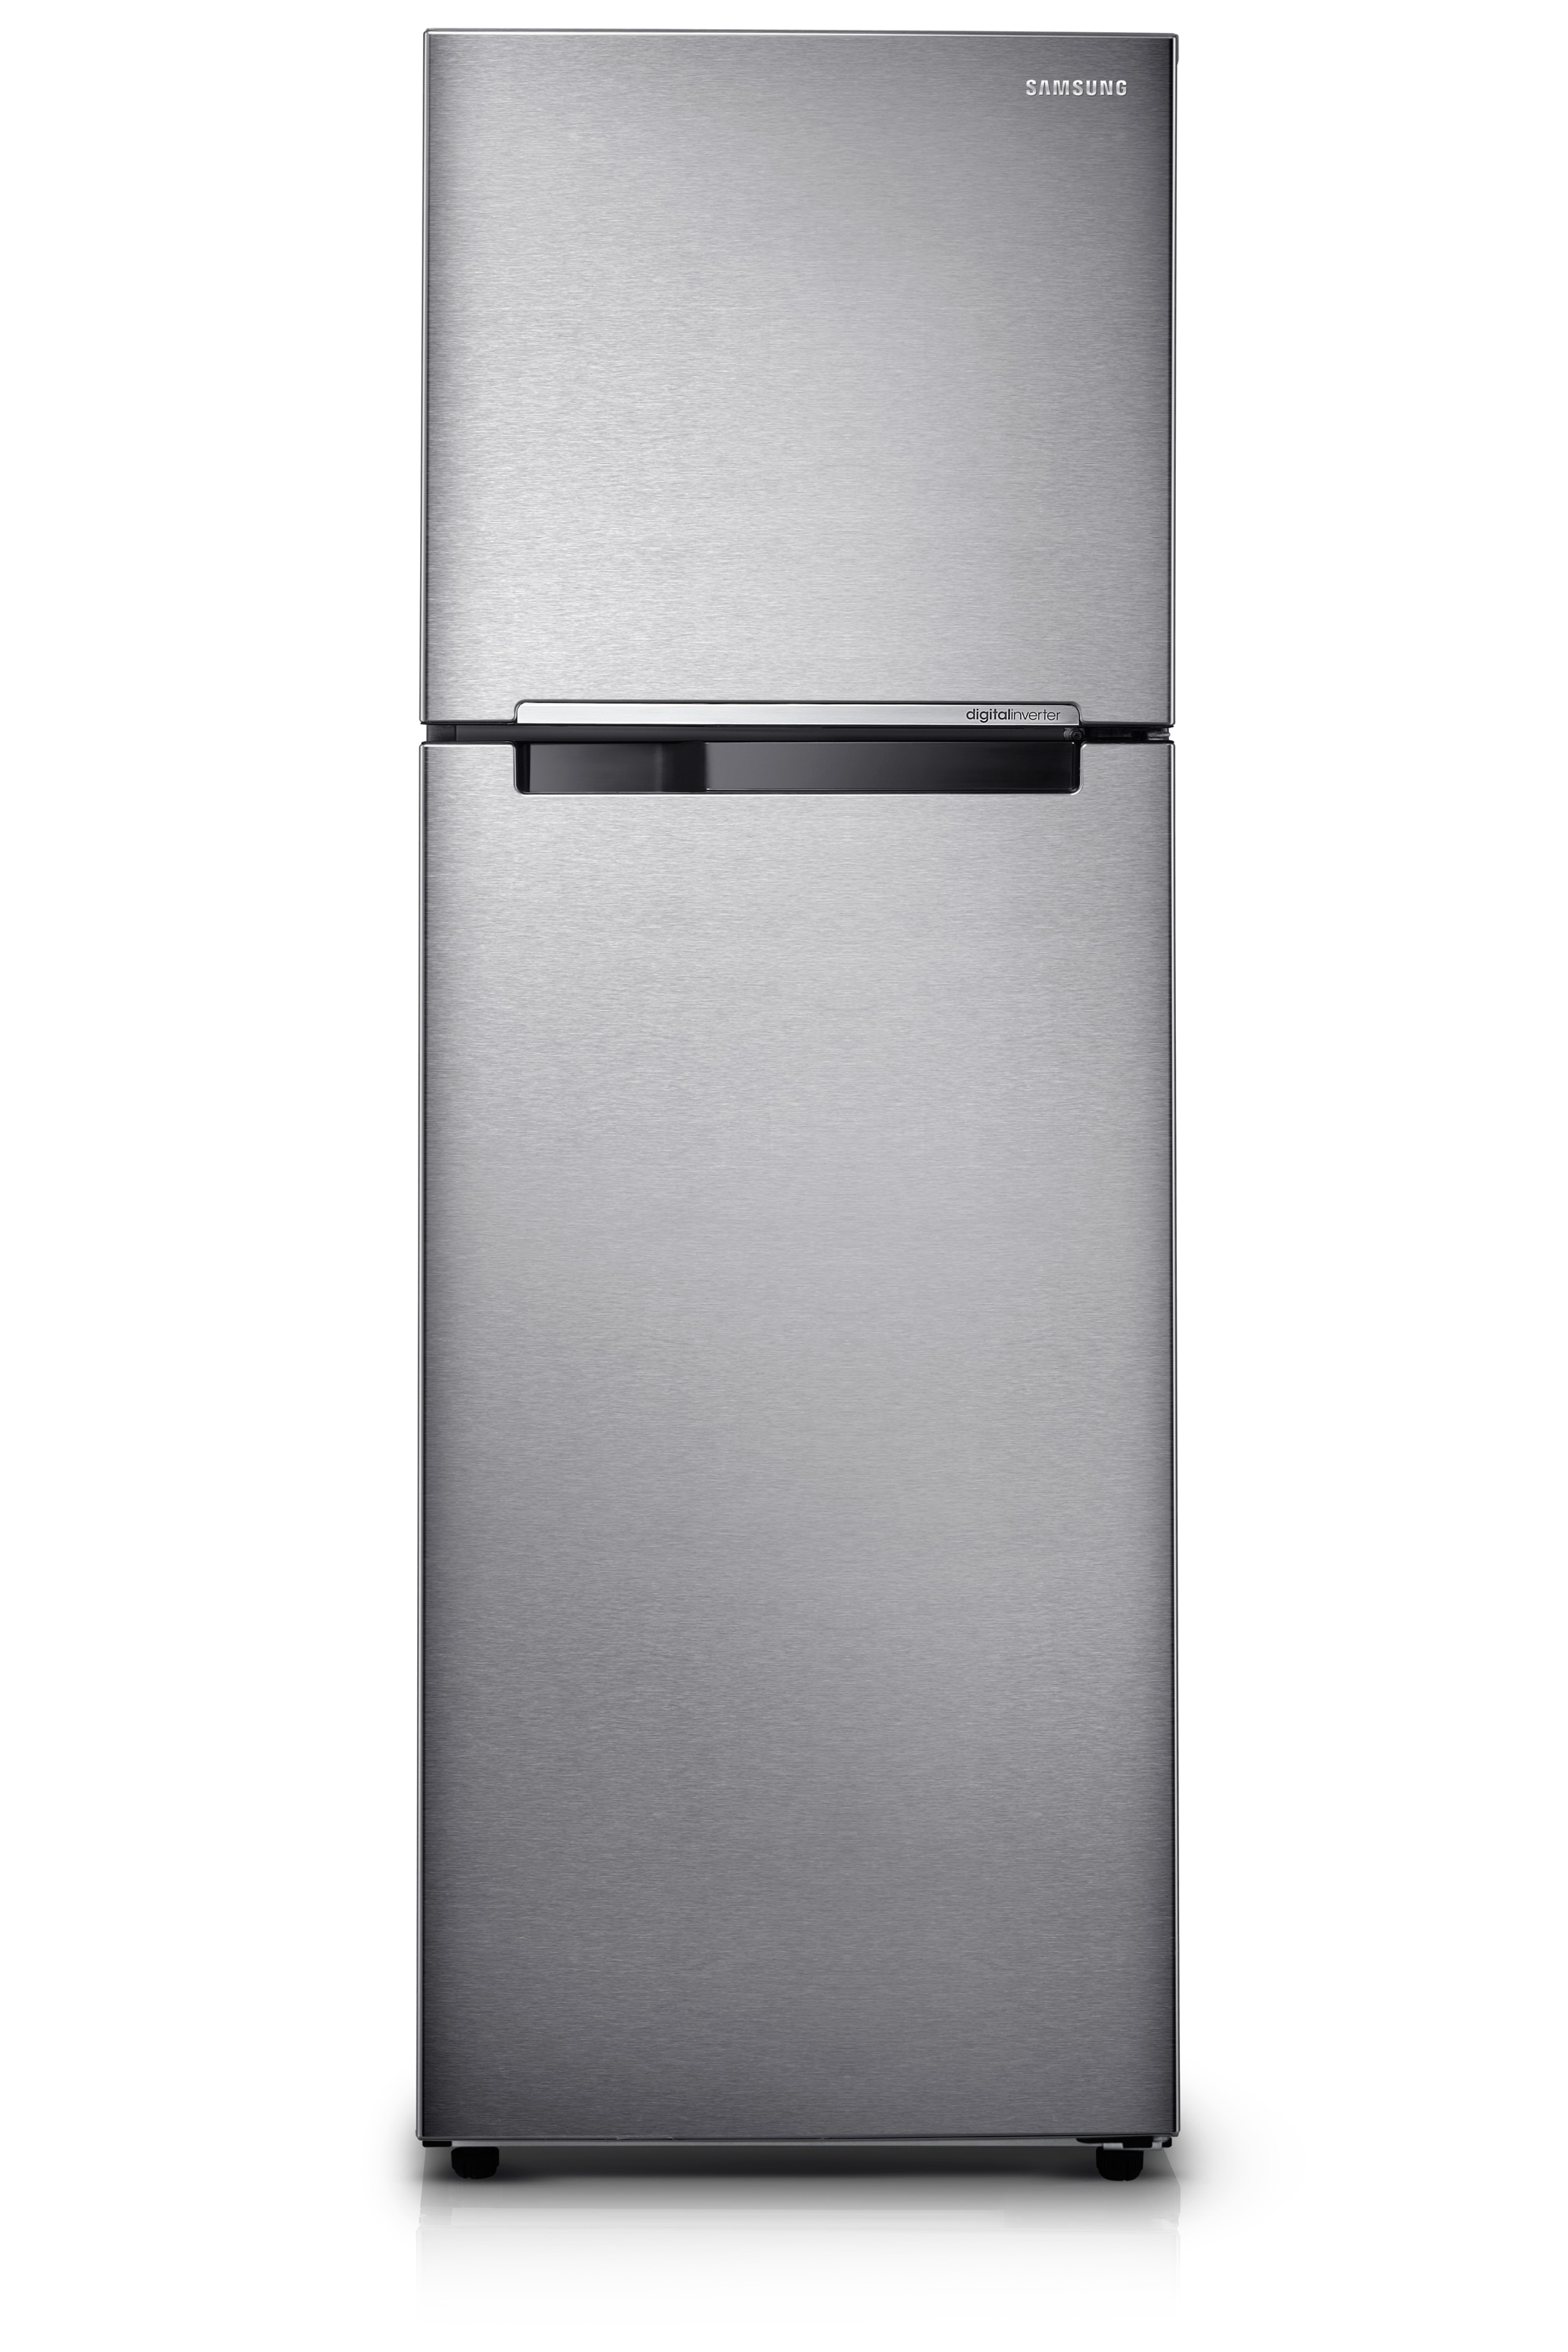 SR341MLS 341L Capacity Top Freezer Refrigerator with 3.5 Star Energy Rating